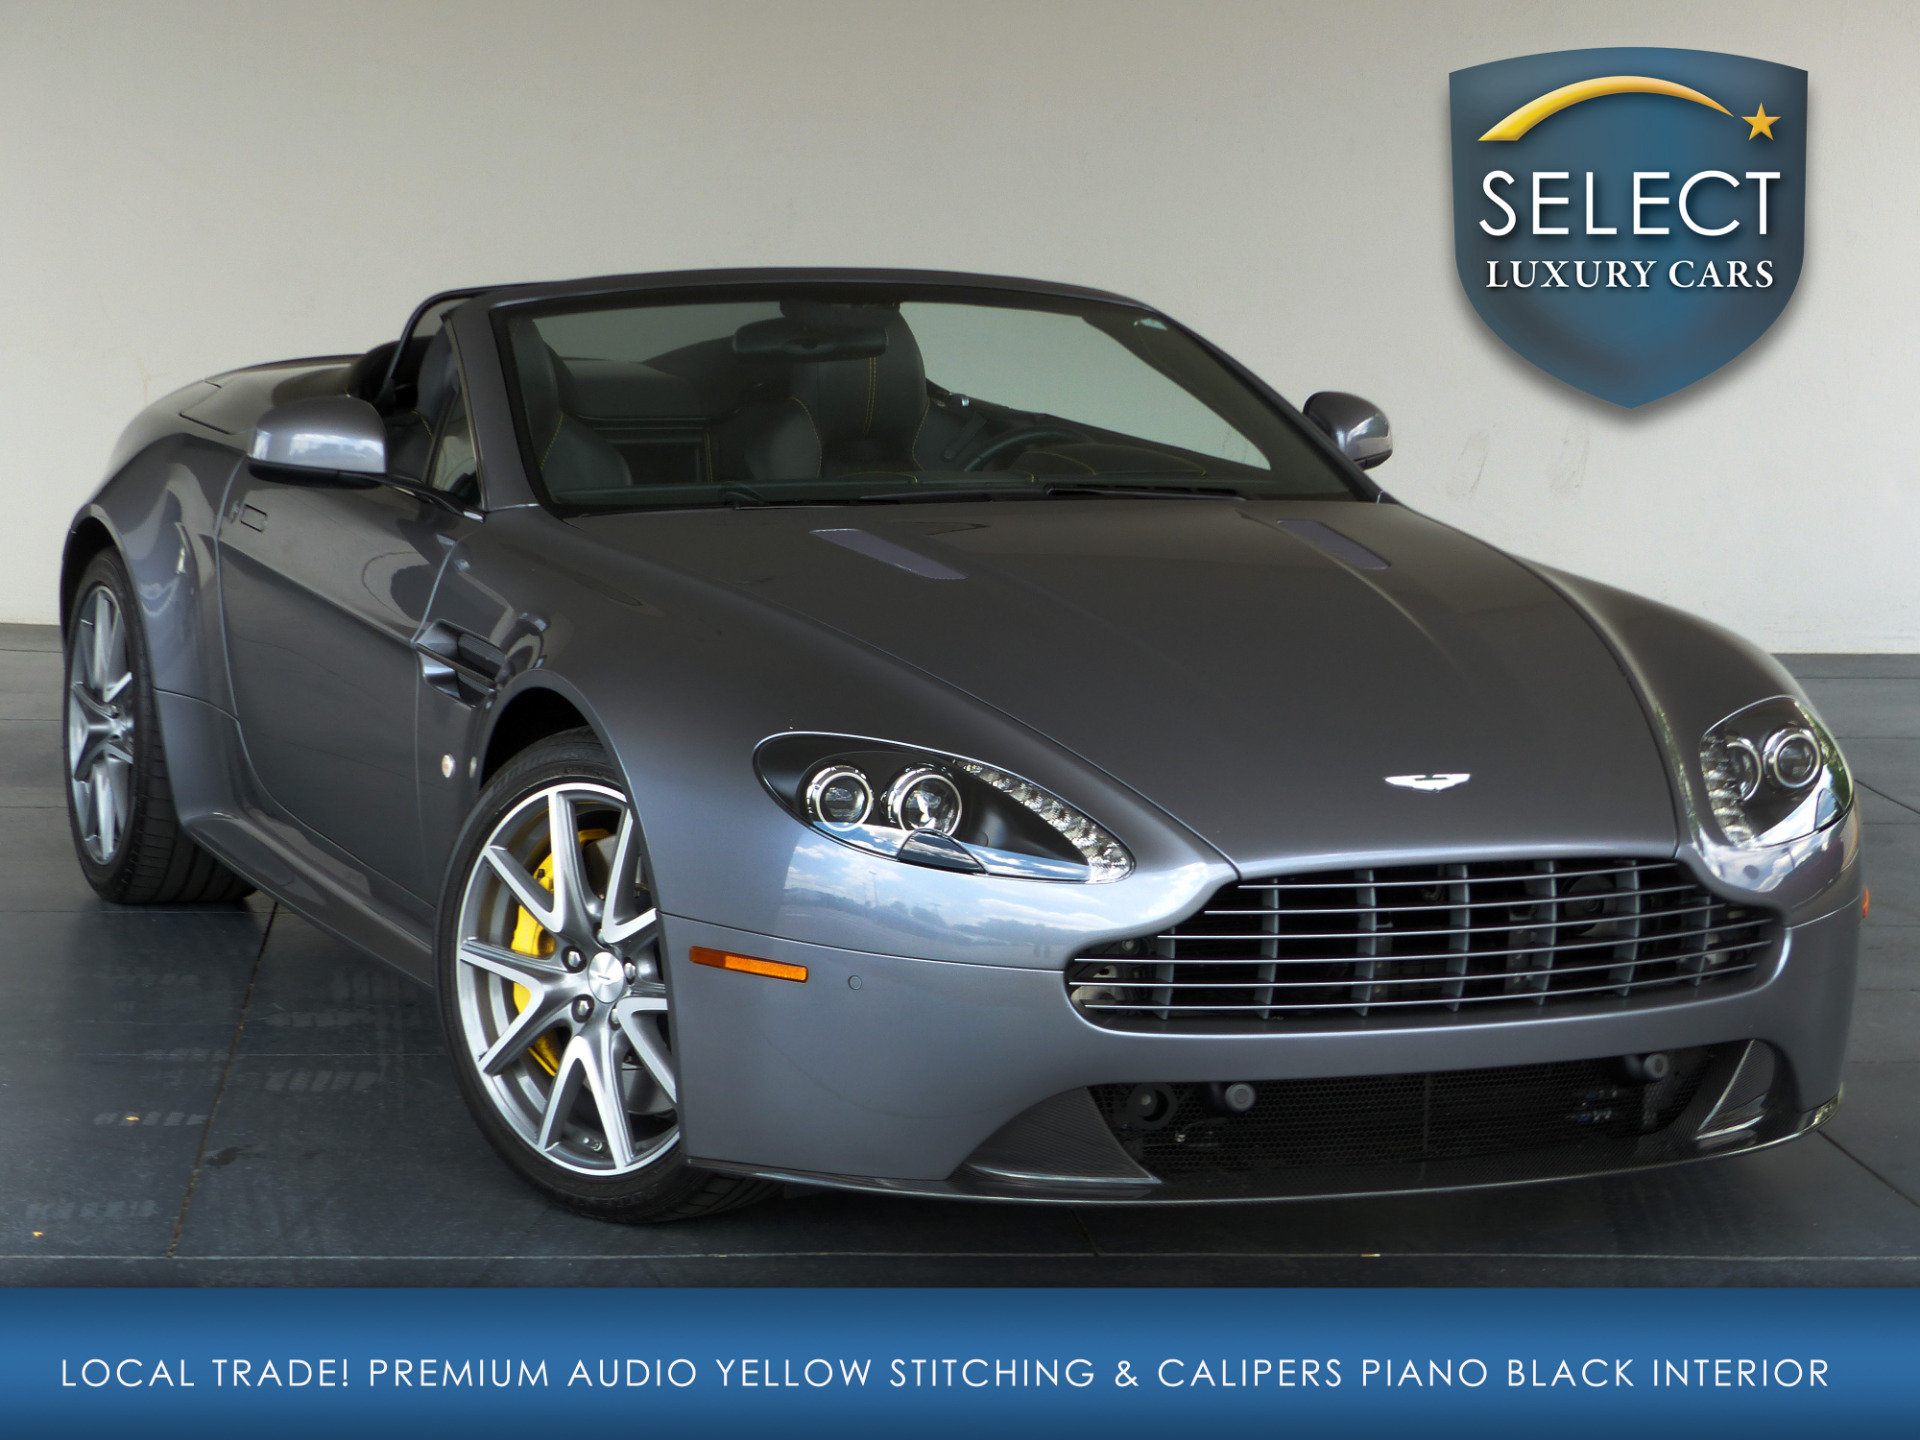 used 2012 aston martin v8 vantage s marietta ga. Black Bedroom Furniture Sets. Home Design Ideas